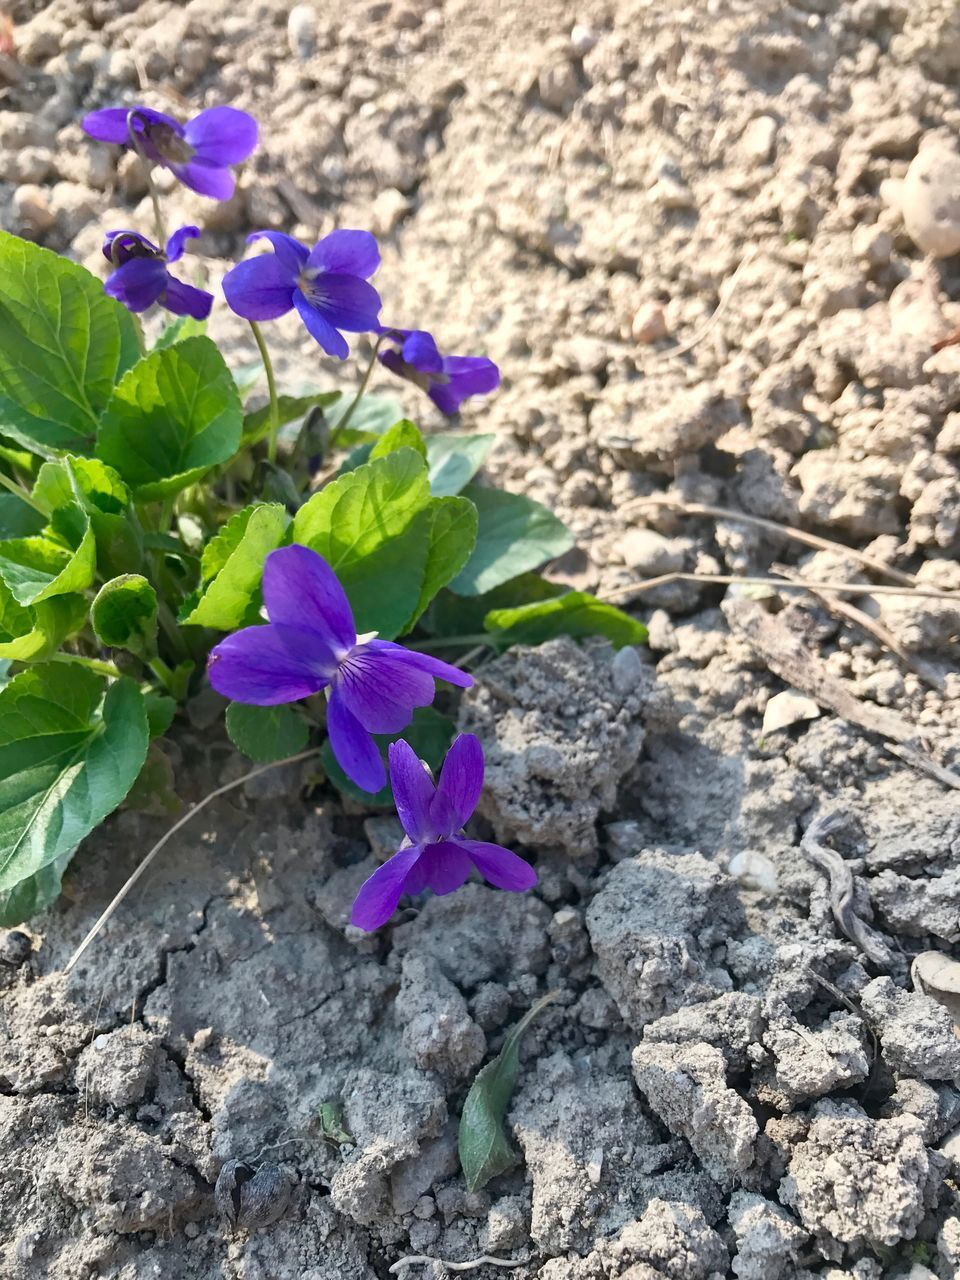 plant, flower, nature, growth, fragility, outdoors, no people, beauty in nature, day, petal, purple, leaf, blooming, green color, close-up, freshness, flower head, periwinkle